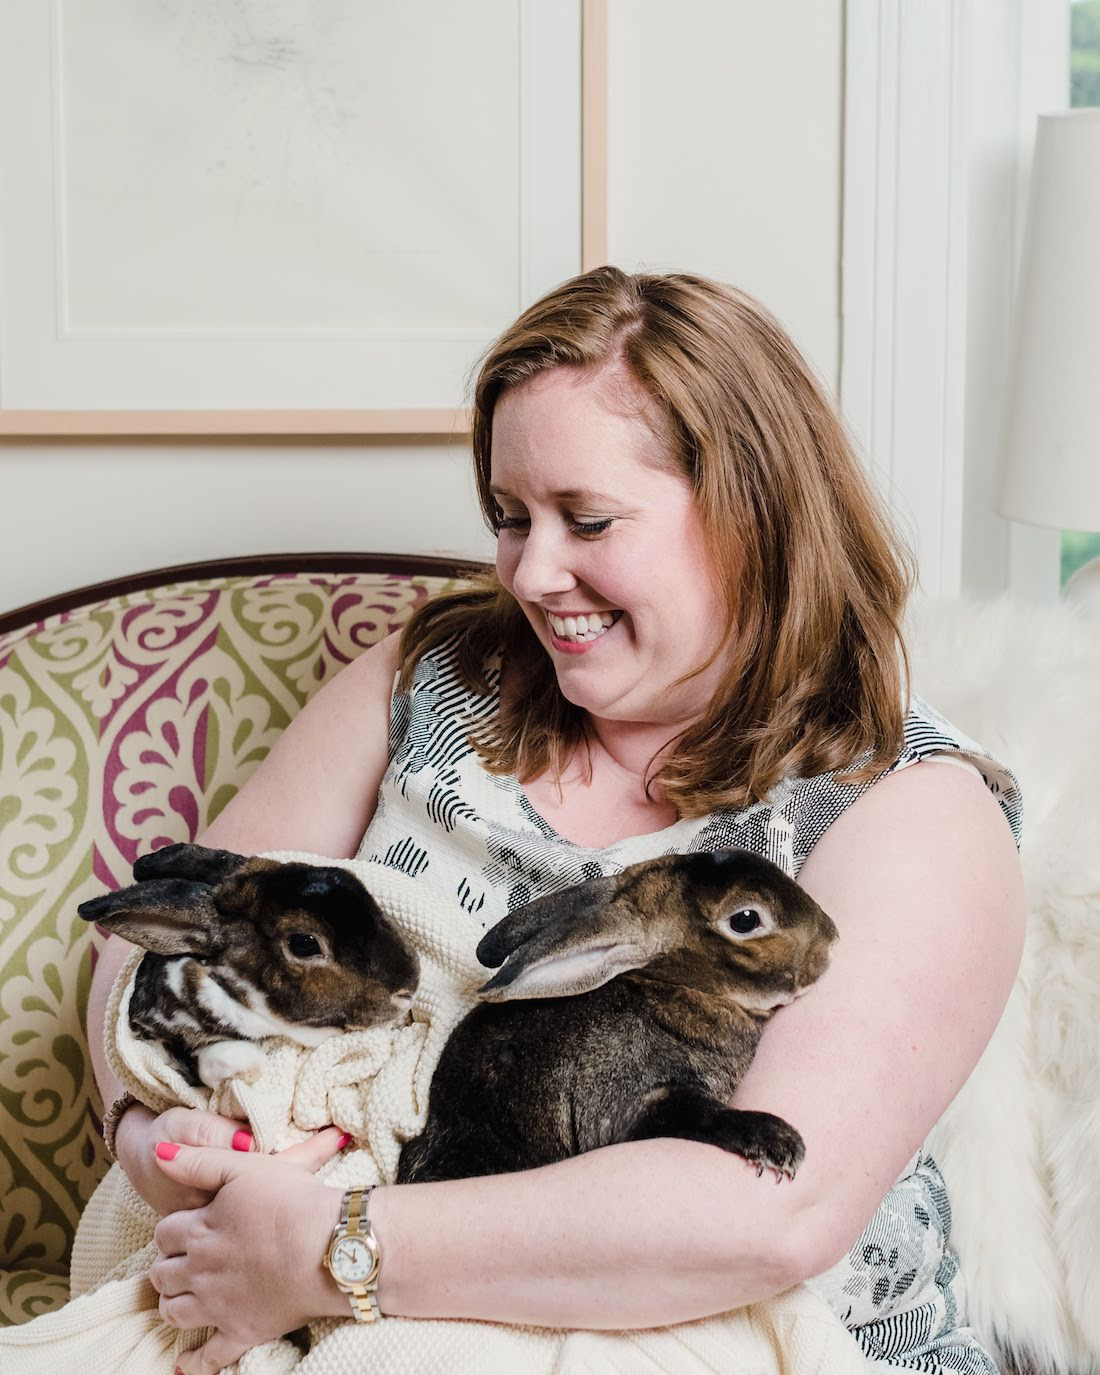 woman is holding rabbits